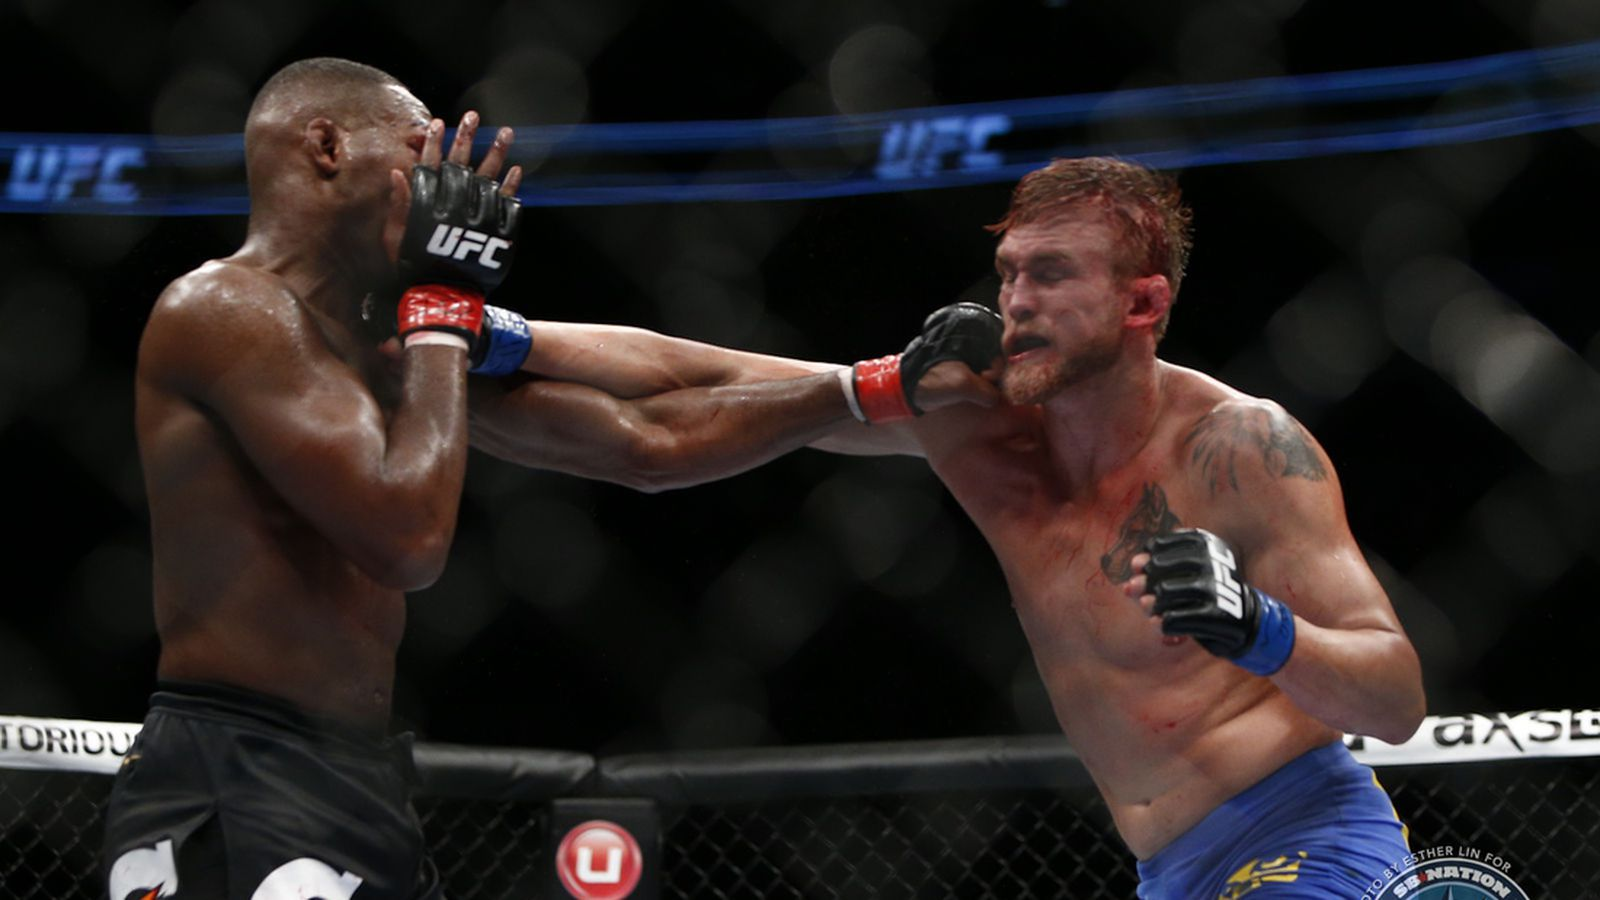 UFC 232 free fight video: Watch Jon Jones and Alexander Gustafsson go to war in epic title fight - MMAmania.com